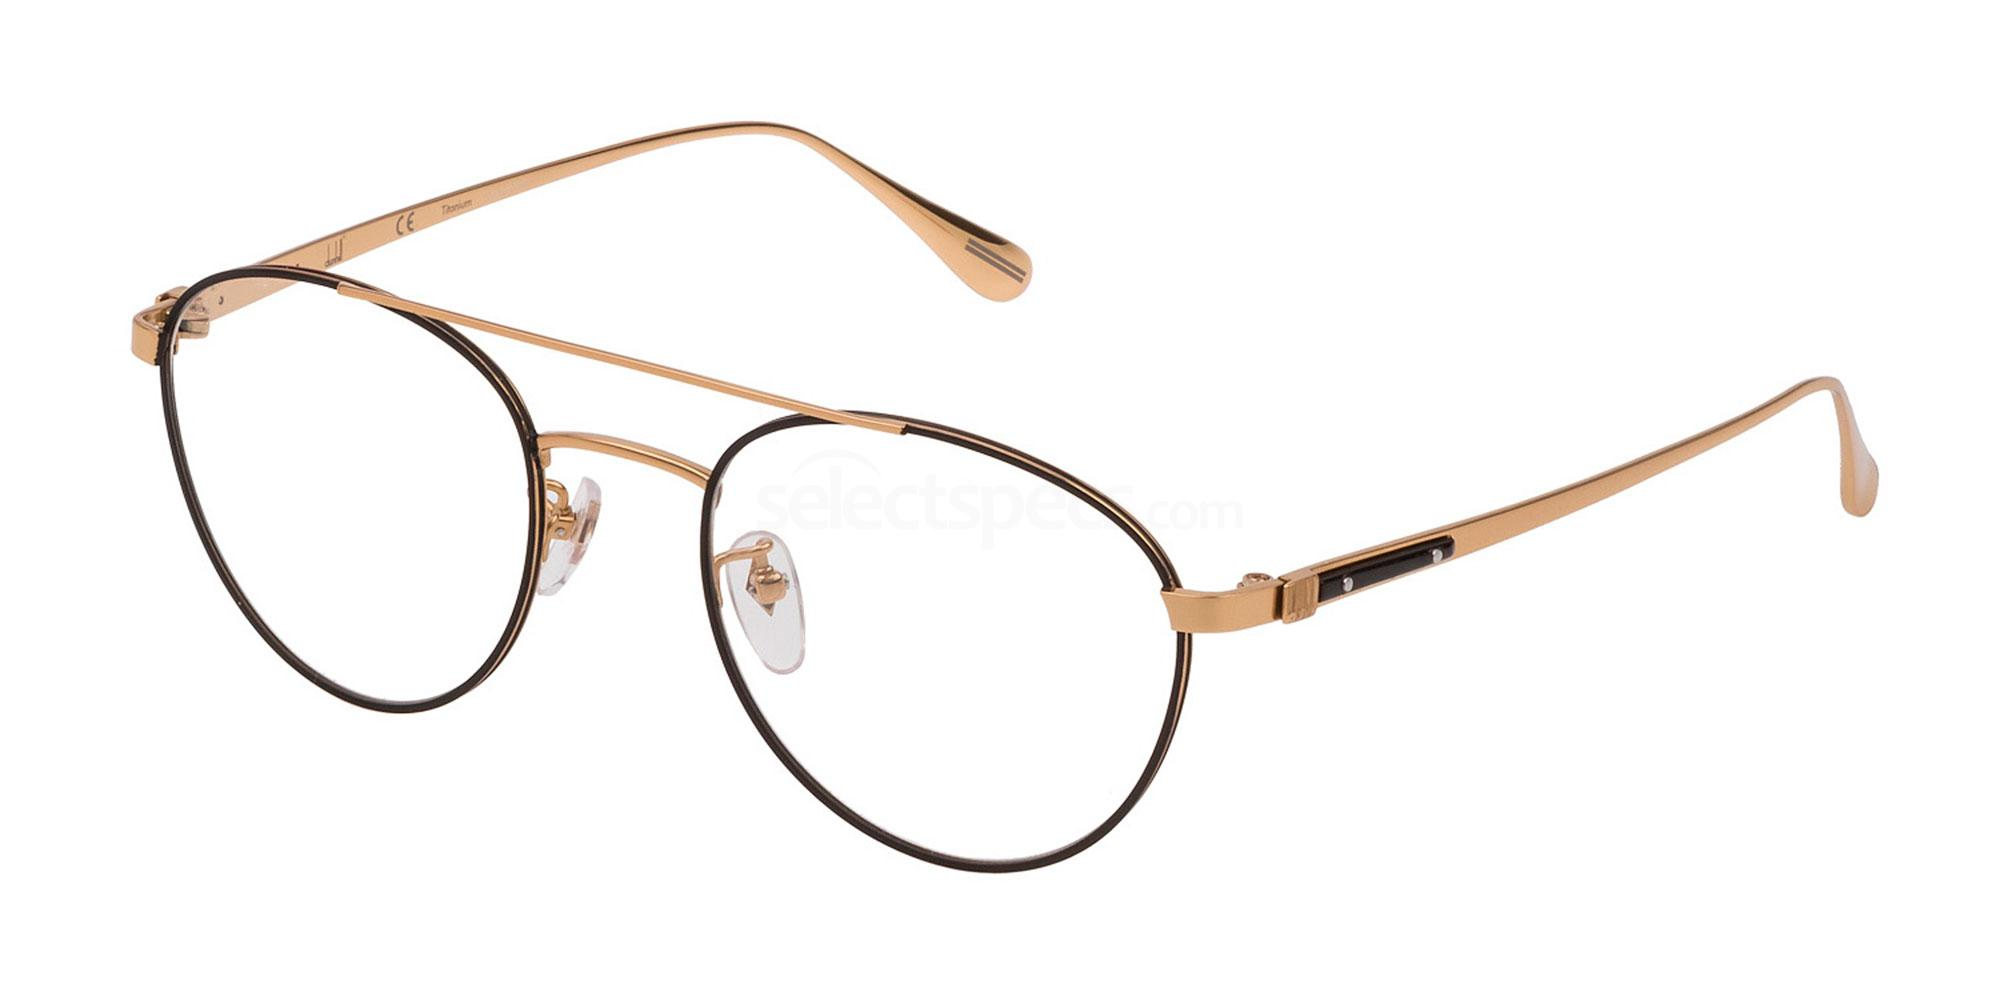 0302 VDH167G Glasses, Dunhill London